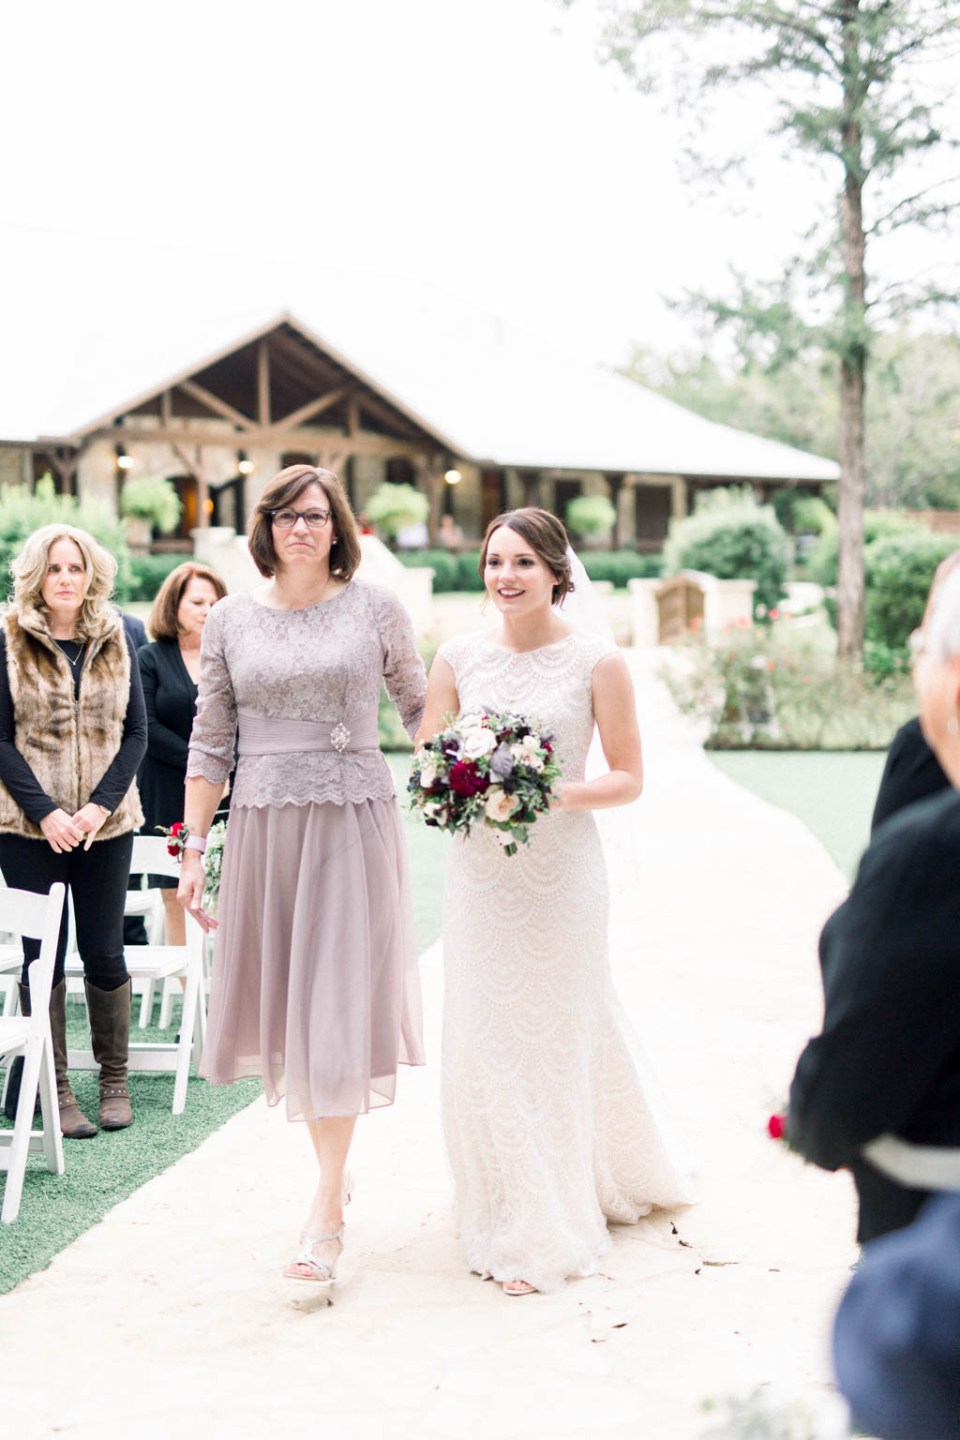 Bride walking down the aisle at The Springs Dallas wedding venue, photographed by Adria Lea Photographer, Dallas wedding photographer